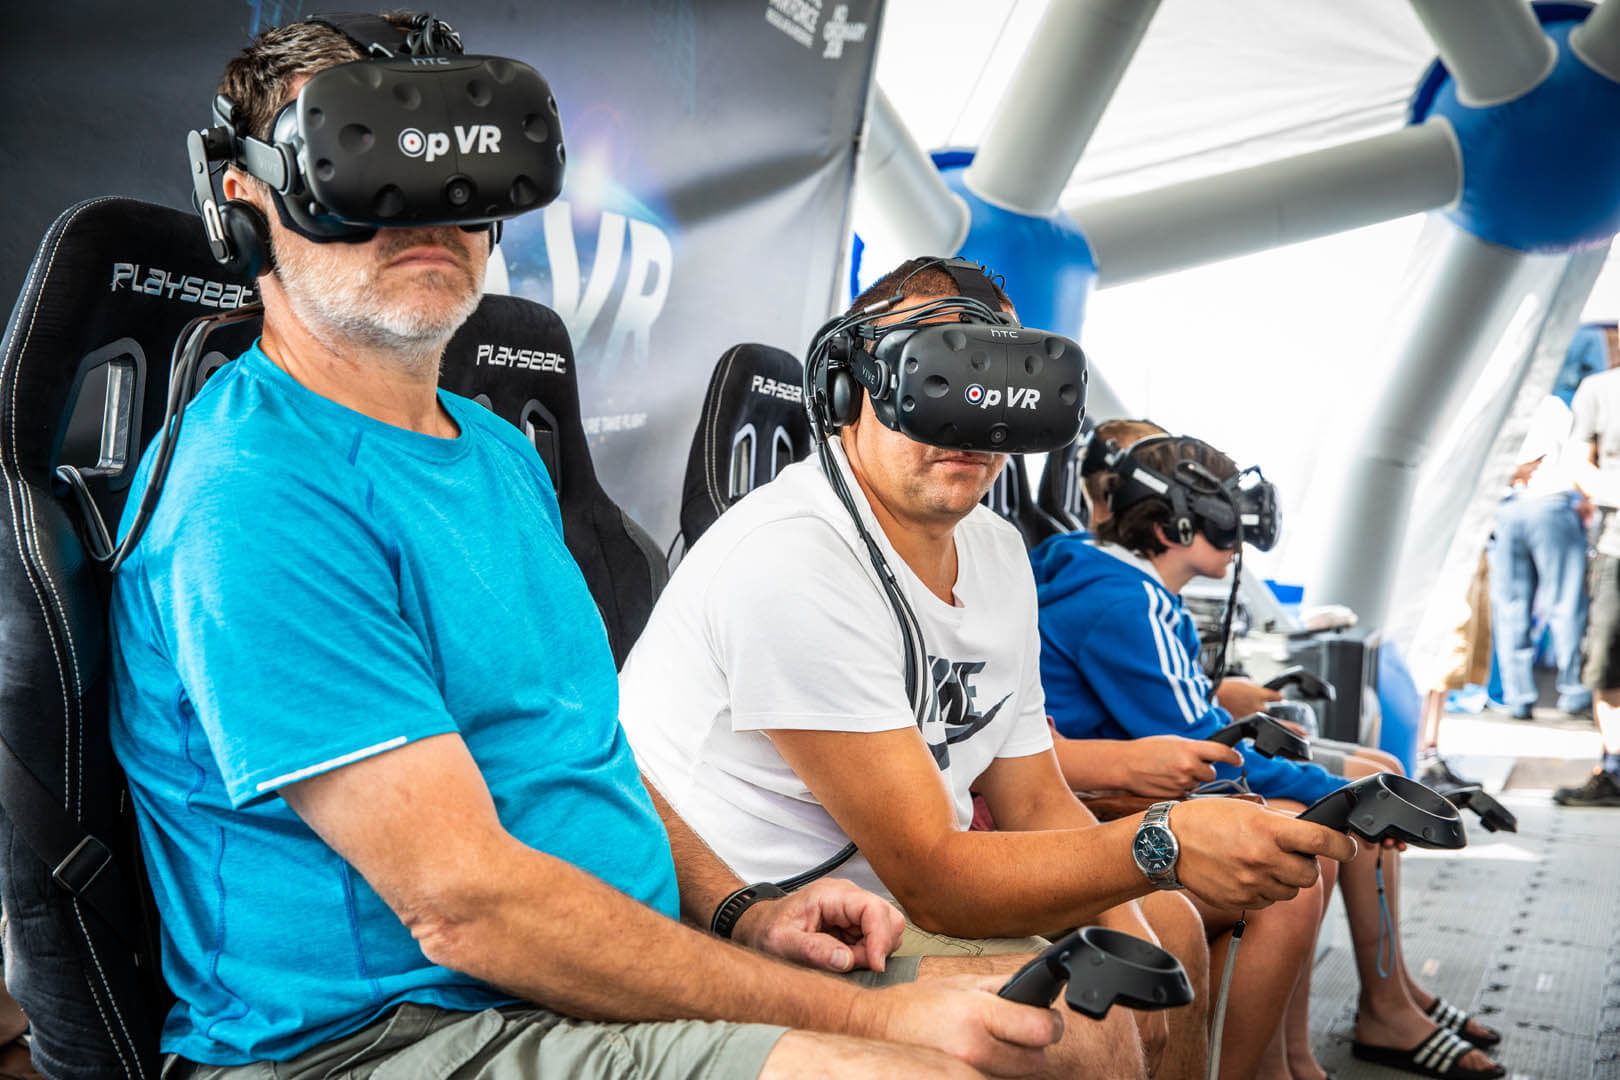 Visitors enjoy a go on the VR headsets at the RAF village